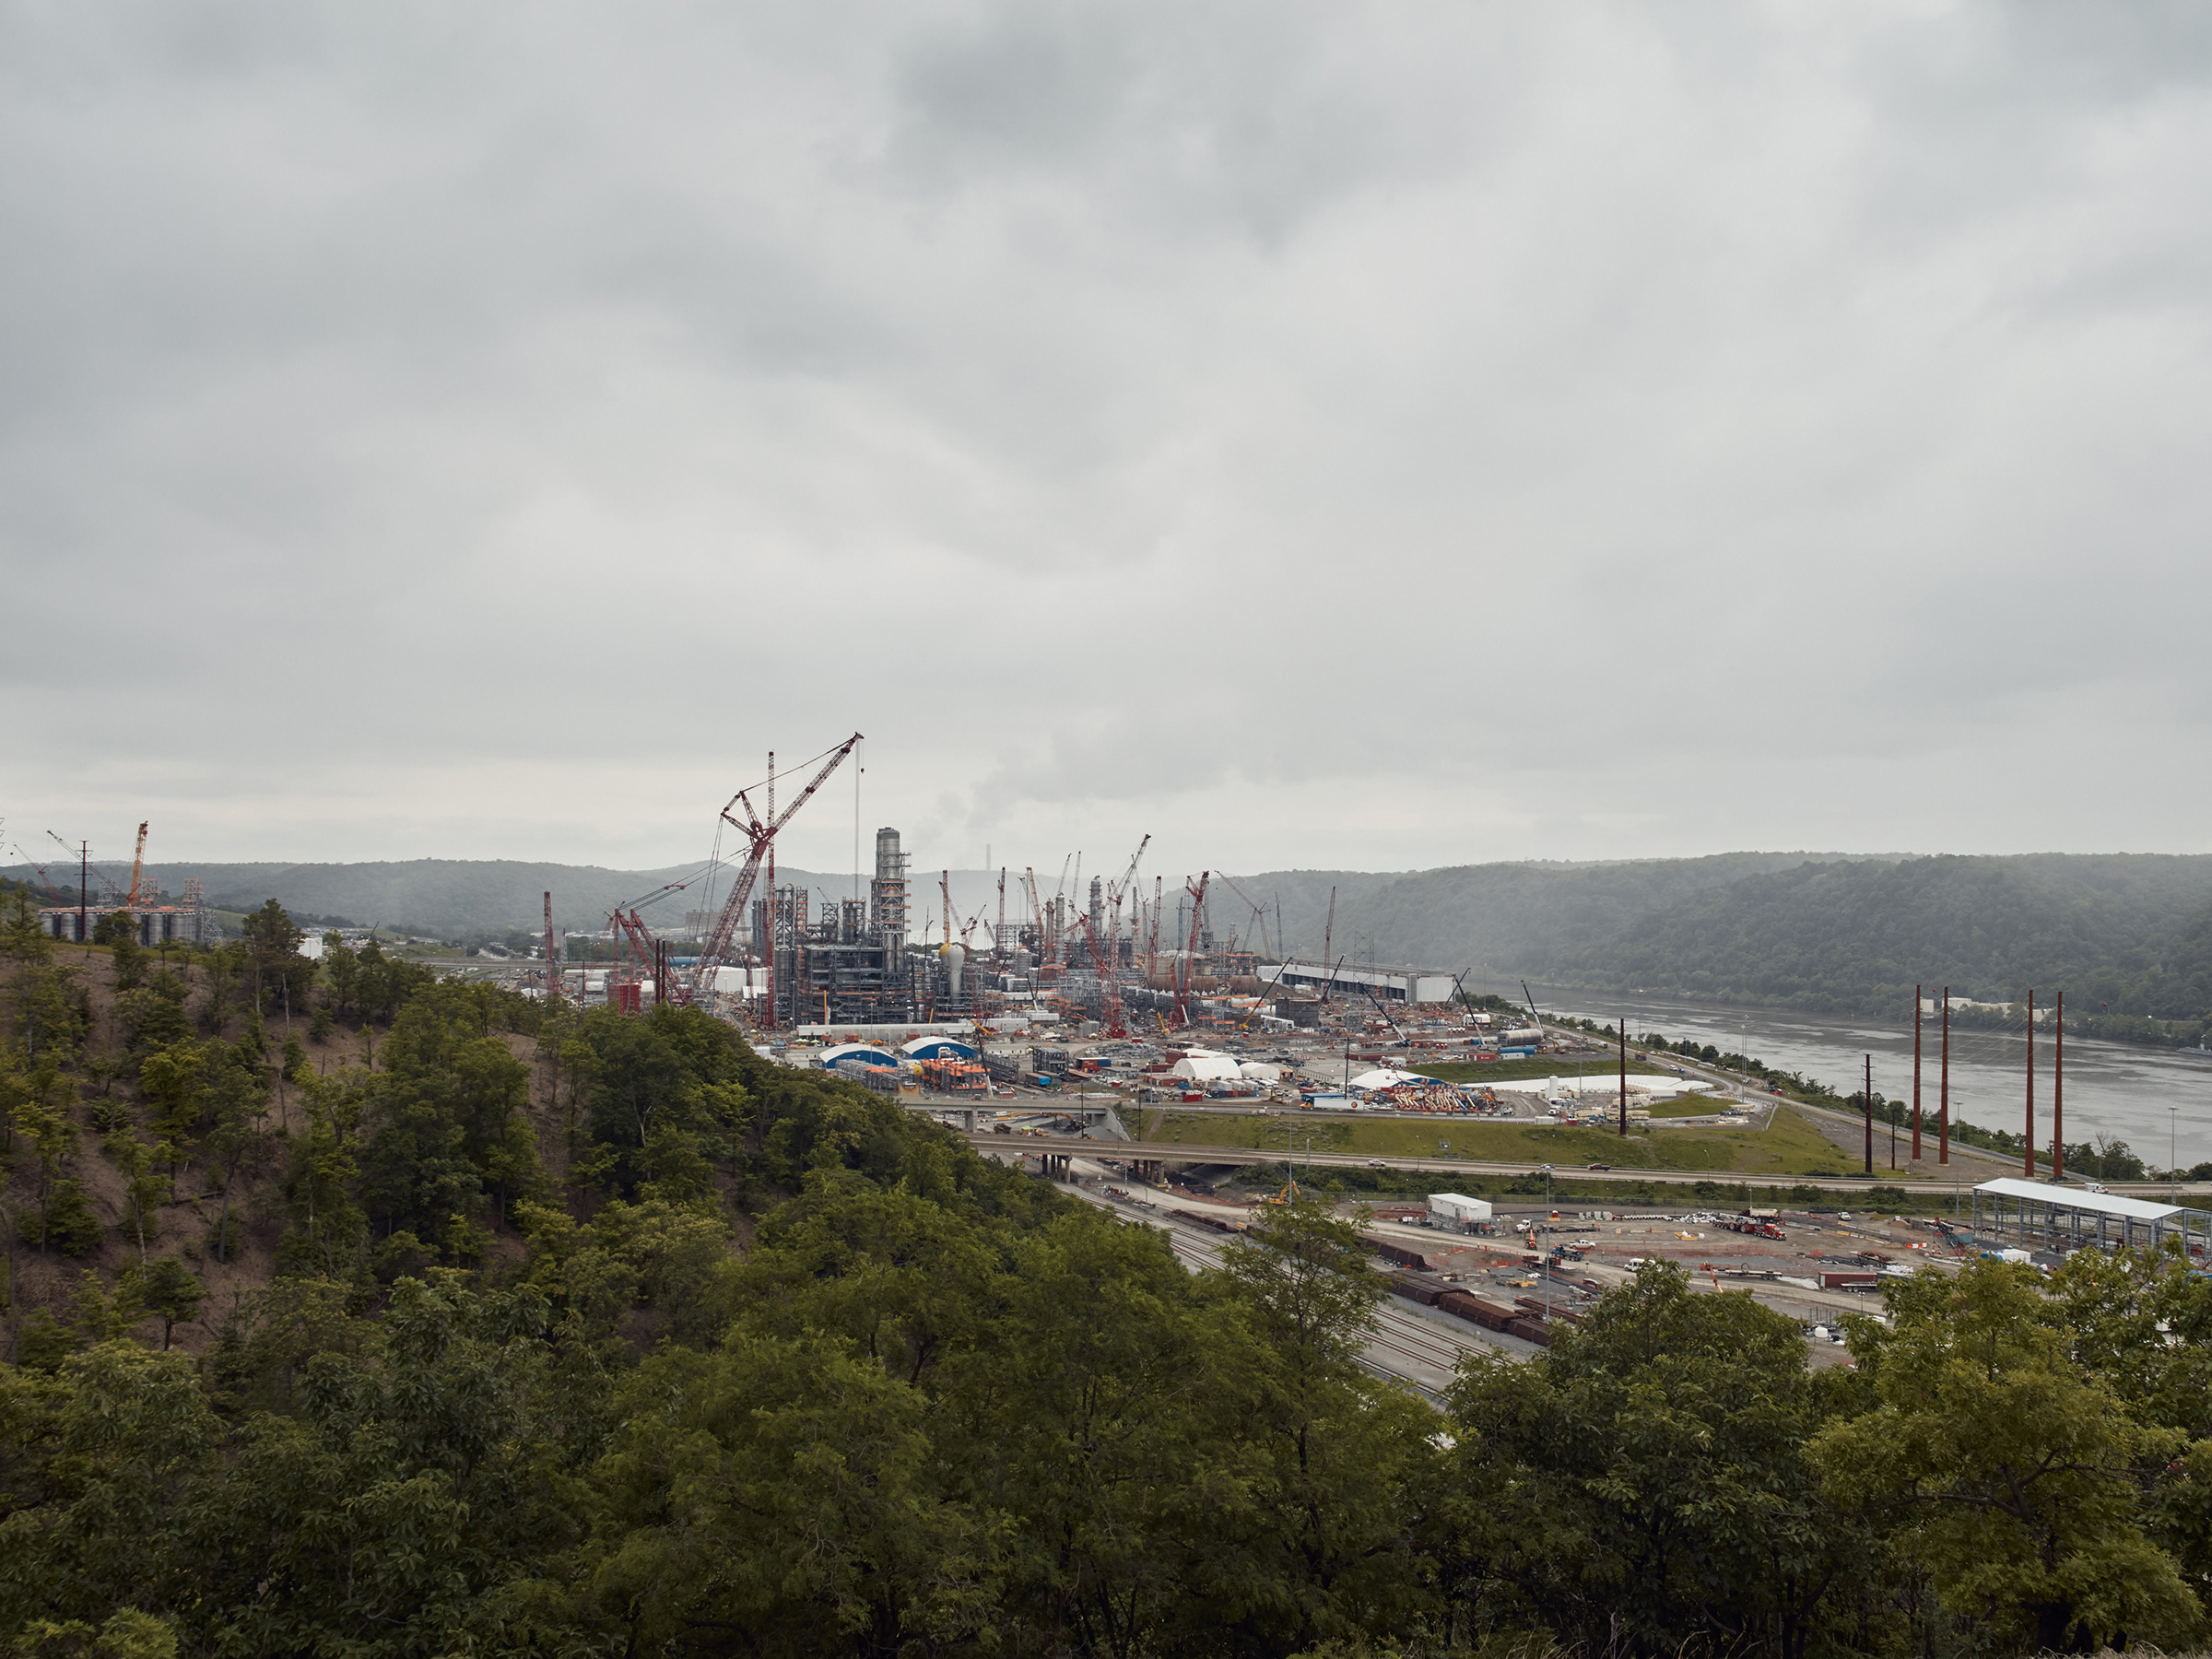 A $6 billion Shell plastics facility is currently under construction outside of Pittsburgh